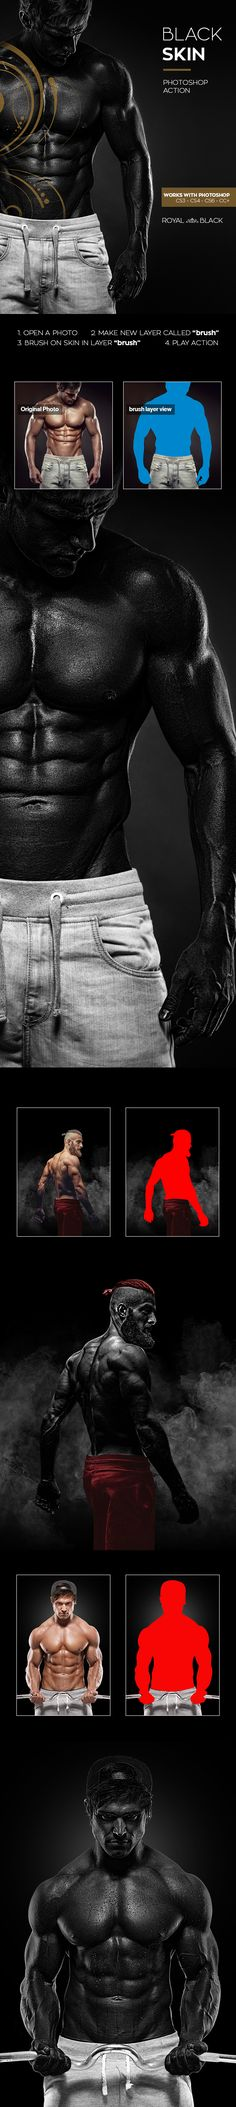 Black Skin Photoshop Action - Photo Effects Actions